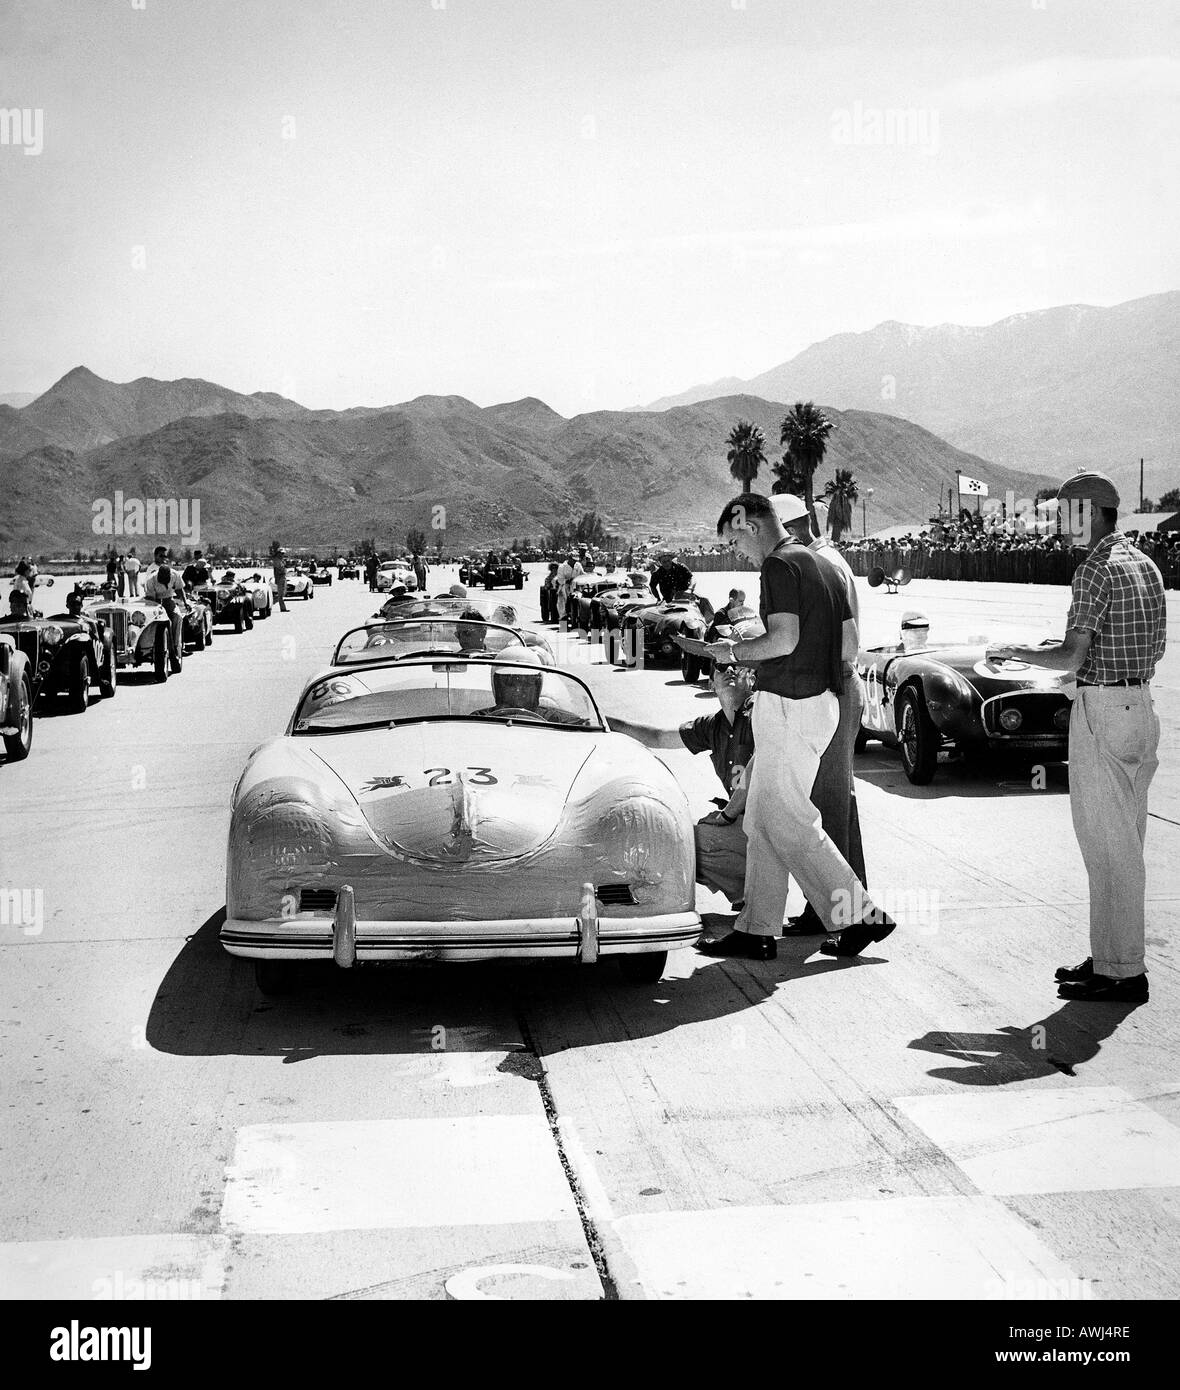 James Dean In His Porsche 550 Spyder Speedster At A